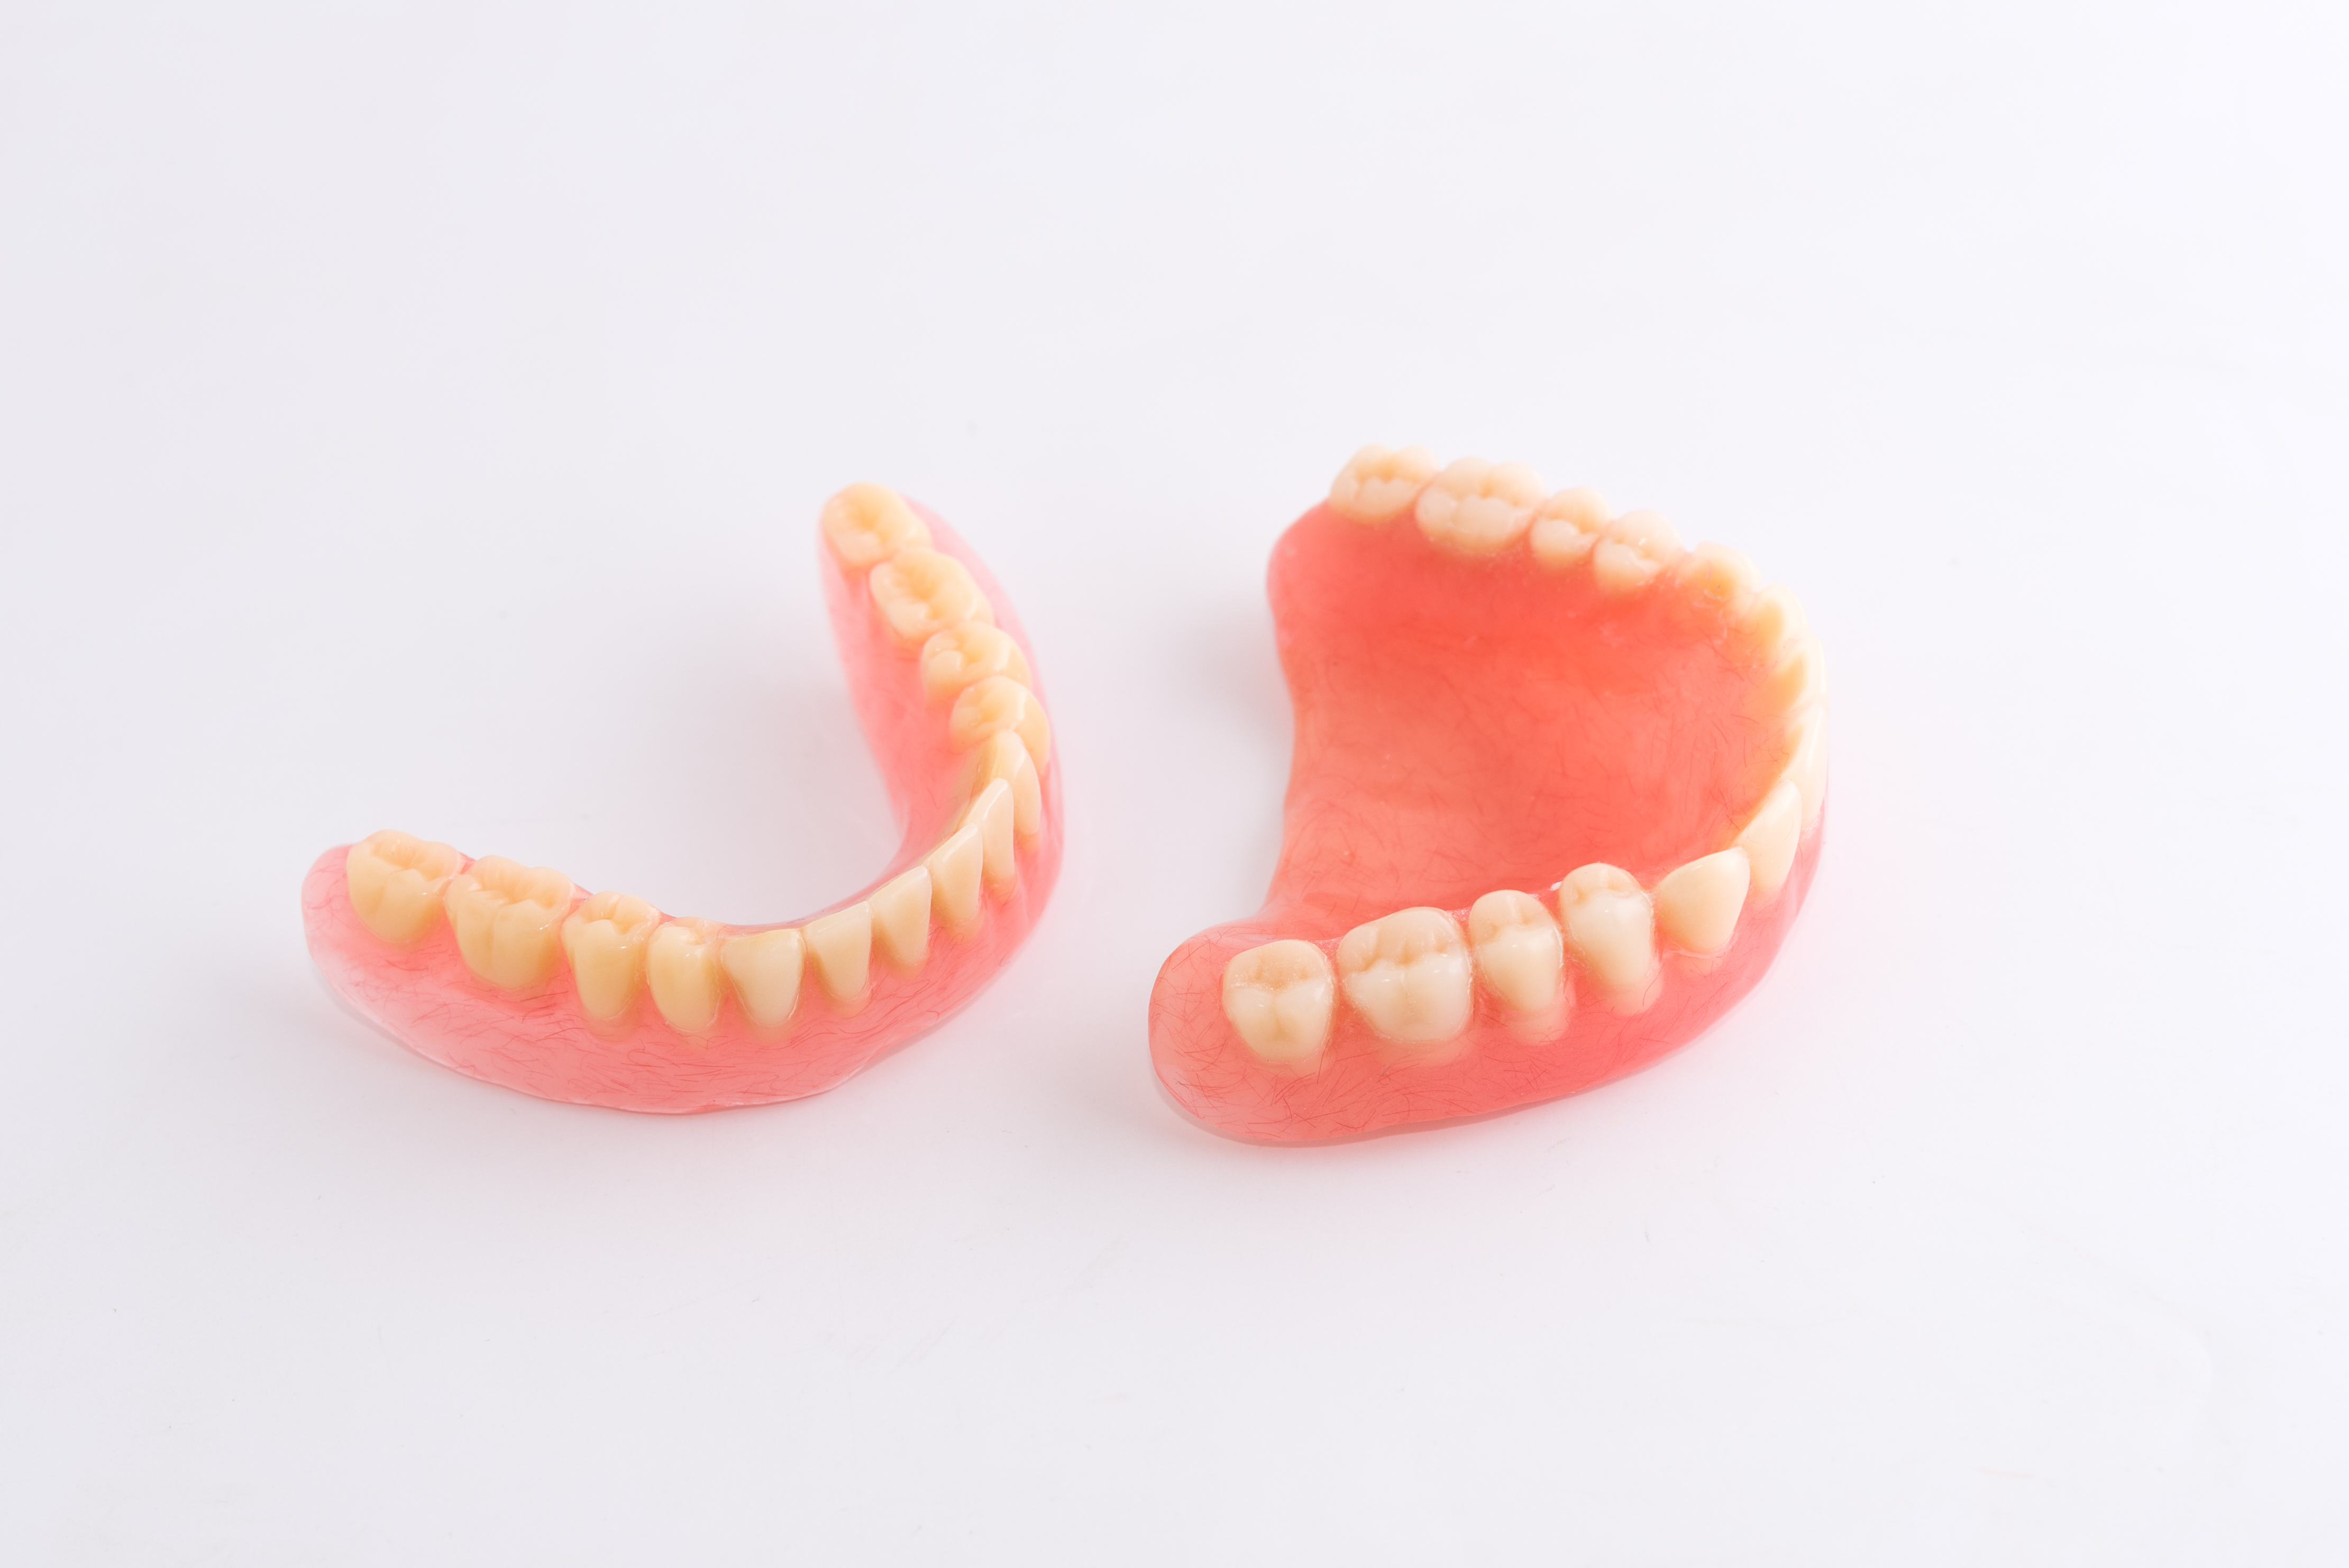 Dentures - Dental Holiday Budapest - Dental Services in Hungary